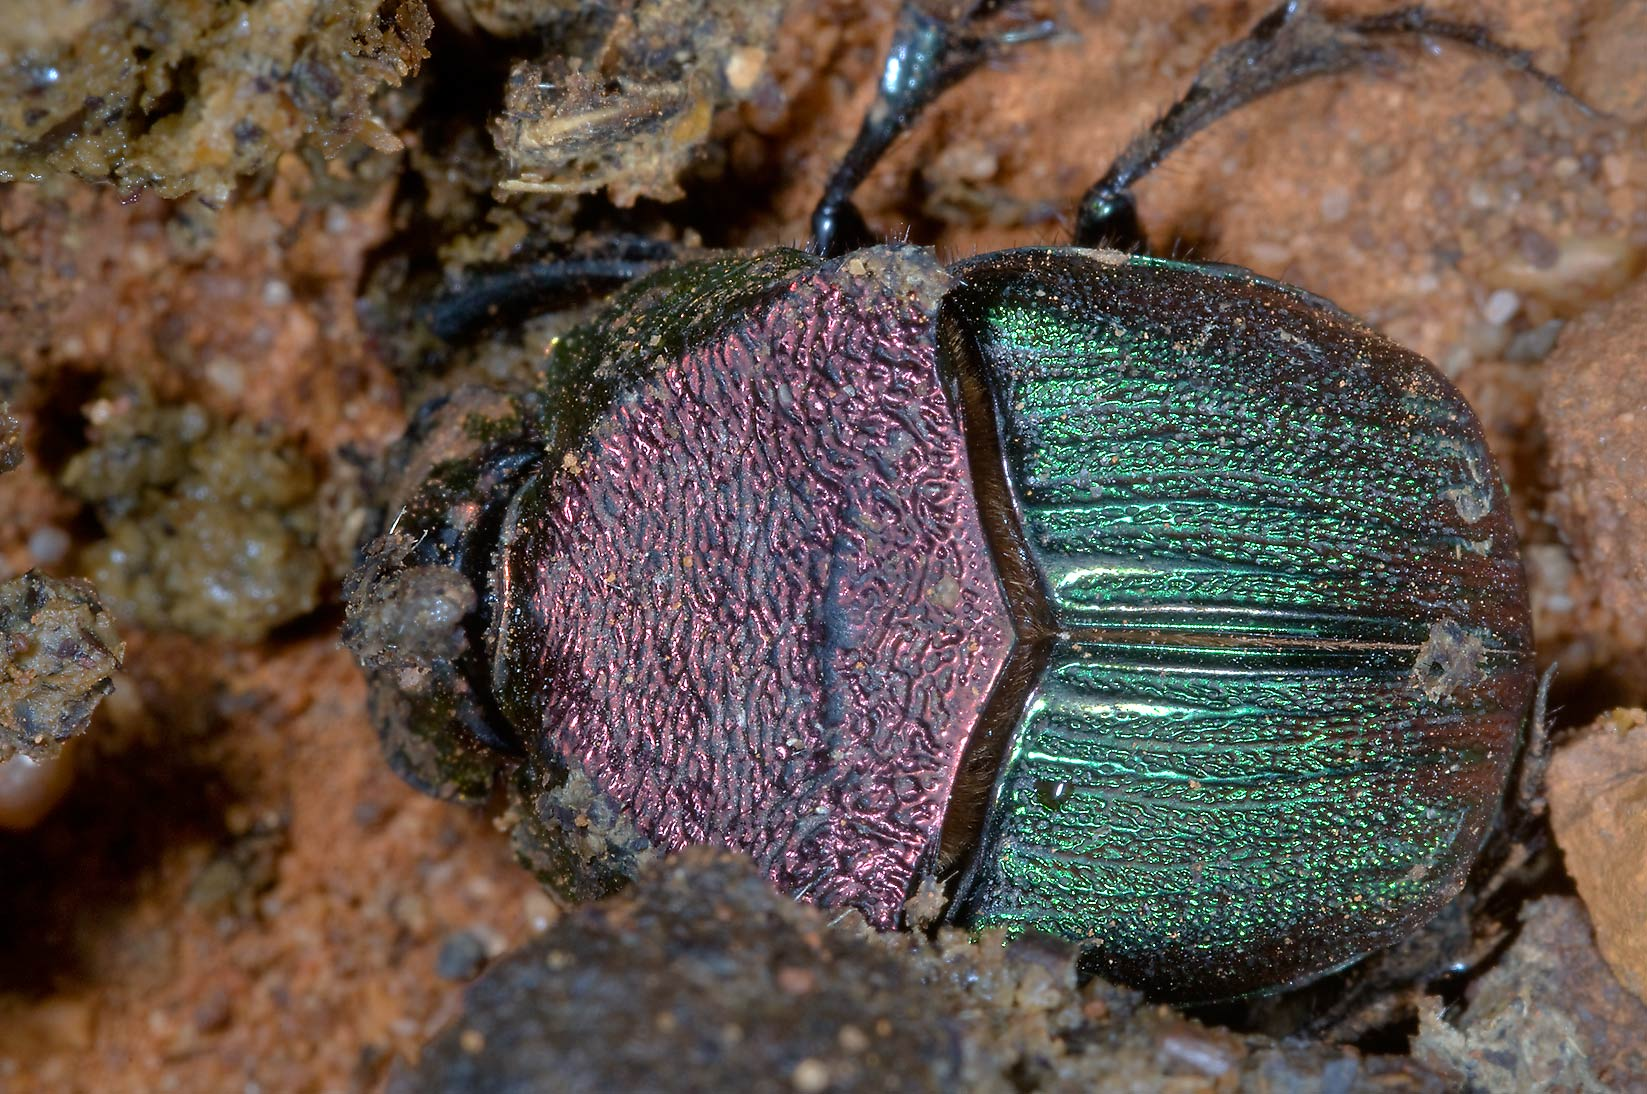 Rainbow scarab (Phanaeus vindex) on horse dung in Lick Creek Park. College Station, Texas